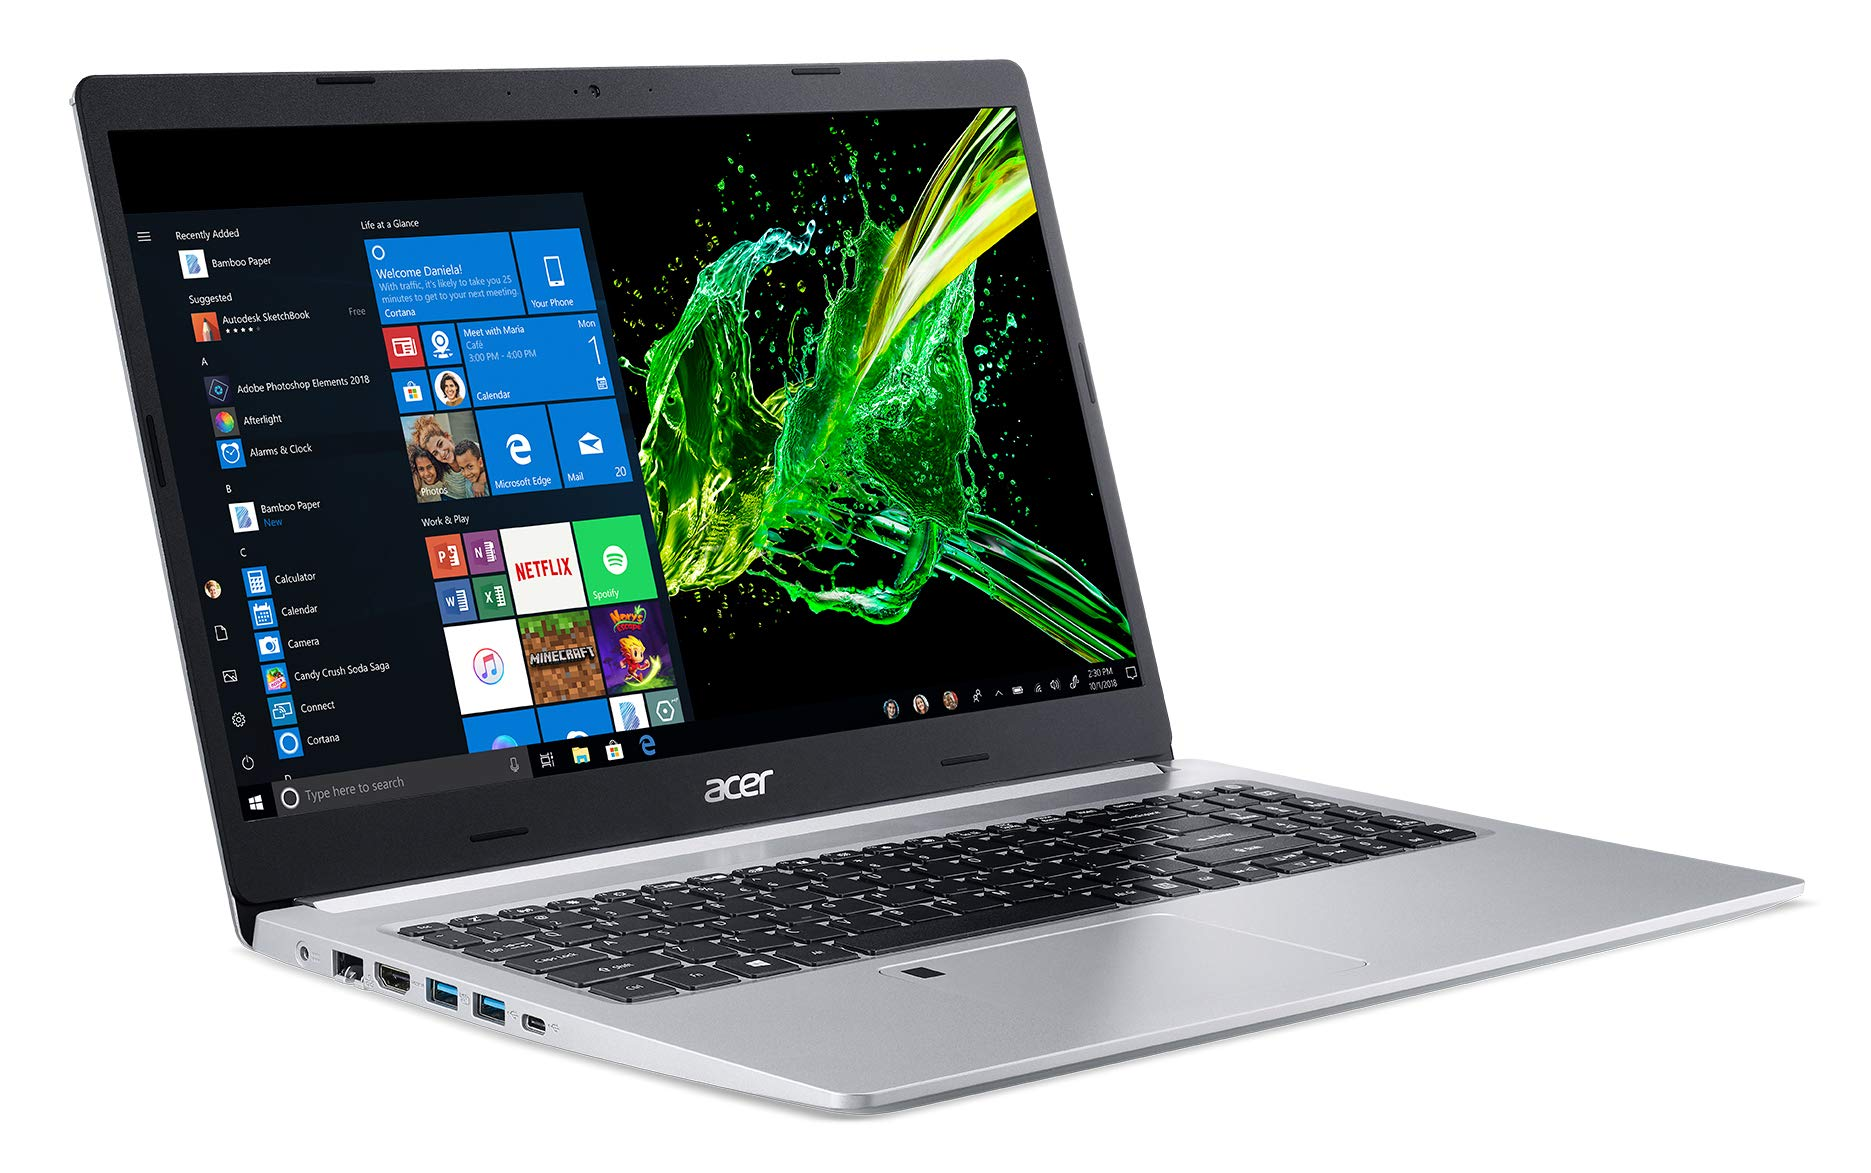 Acer Aspire 5, 15.6'' Full HD IPS Display, 8th Gen Intel Core i5-8265U, 8GB DDR4, 256GB PCIe NVMe SSD, Backlit Keyboard, Fingerprint Reader, Windows 10 Home, A515-54-51DJ by Acer (Image #12)